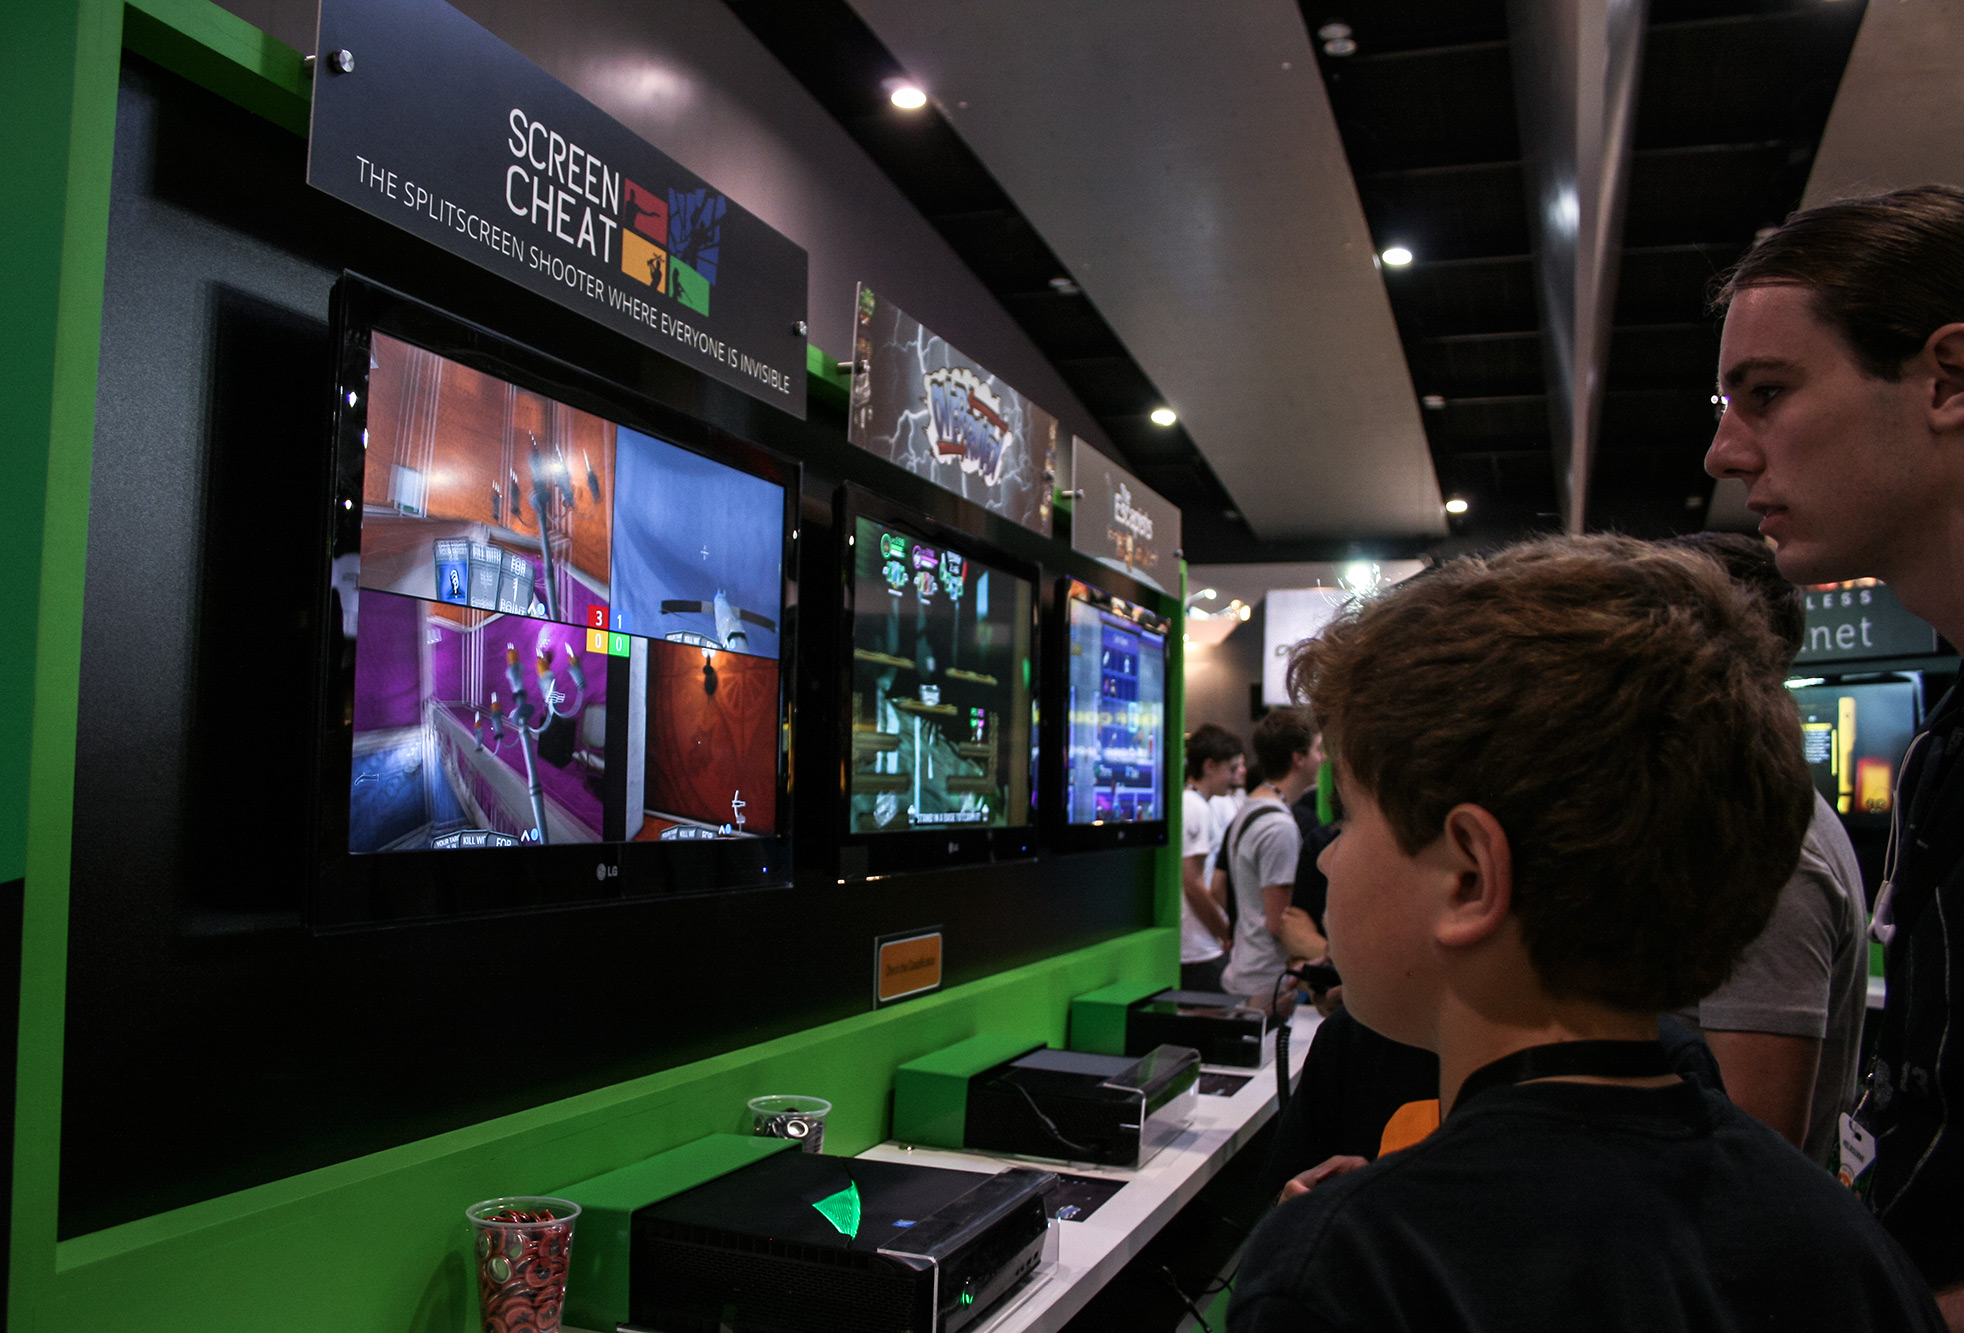 PAX Aus - Melbourne 2014 -  Screencheat